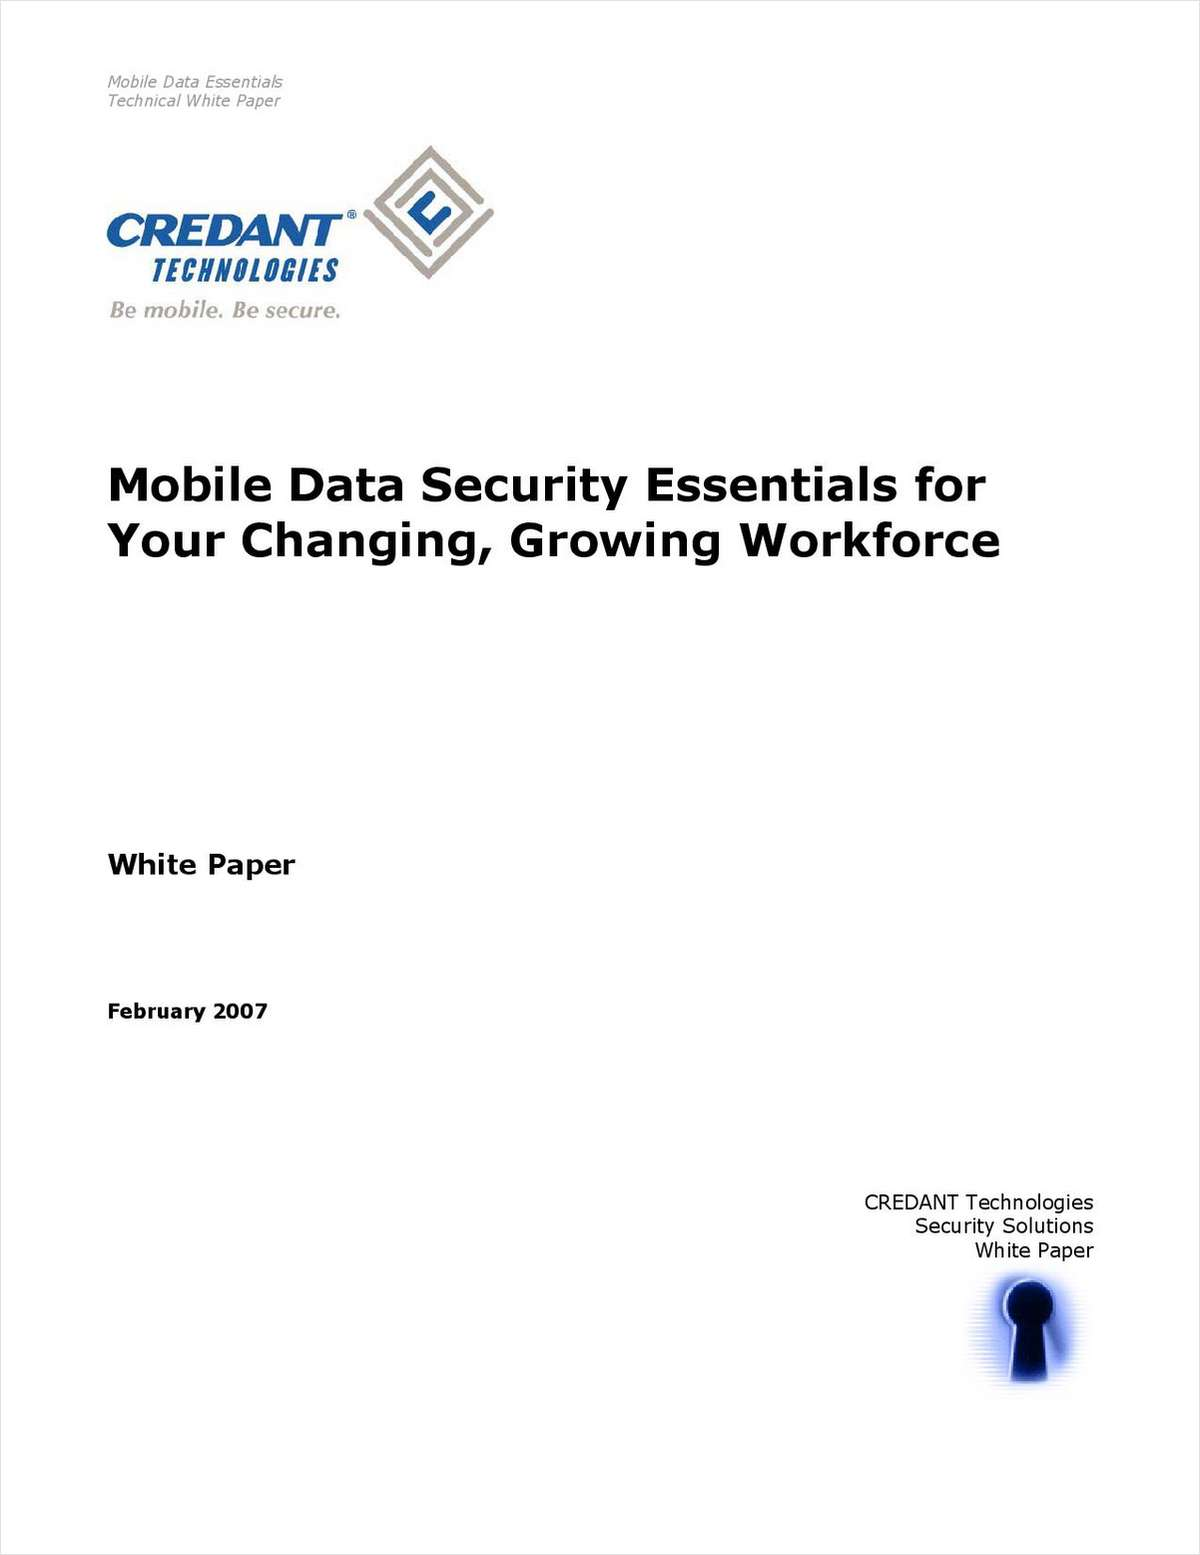 Mobile Security Essentials for a Dynamic Workforce